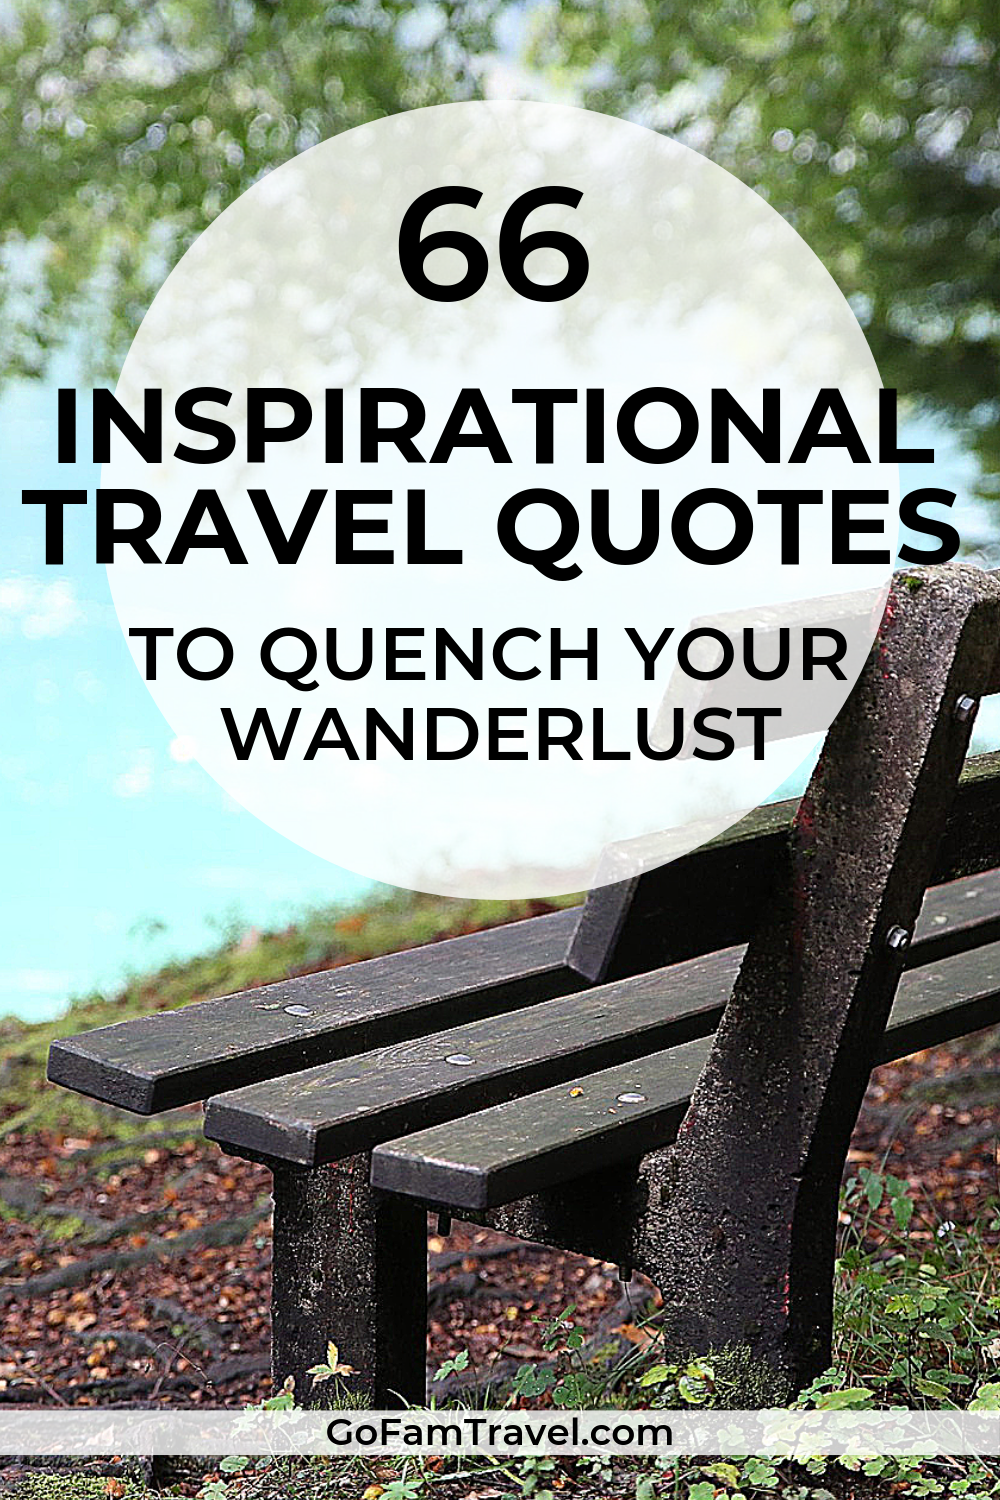 66 Family Travel Quotes to Inspire You!   Travel Inspiration